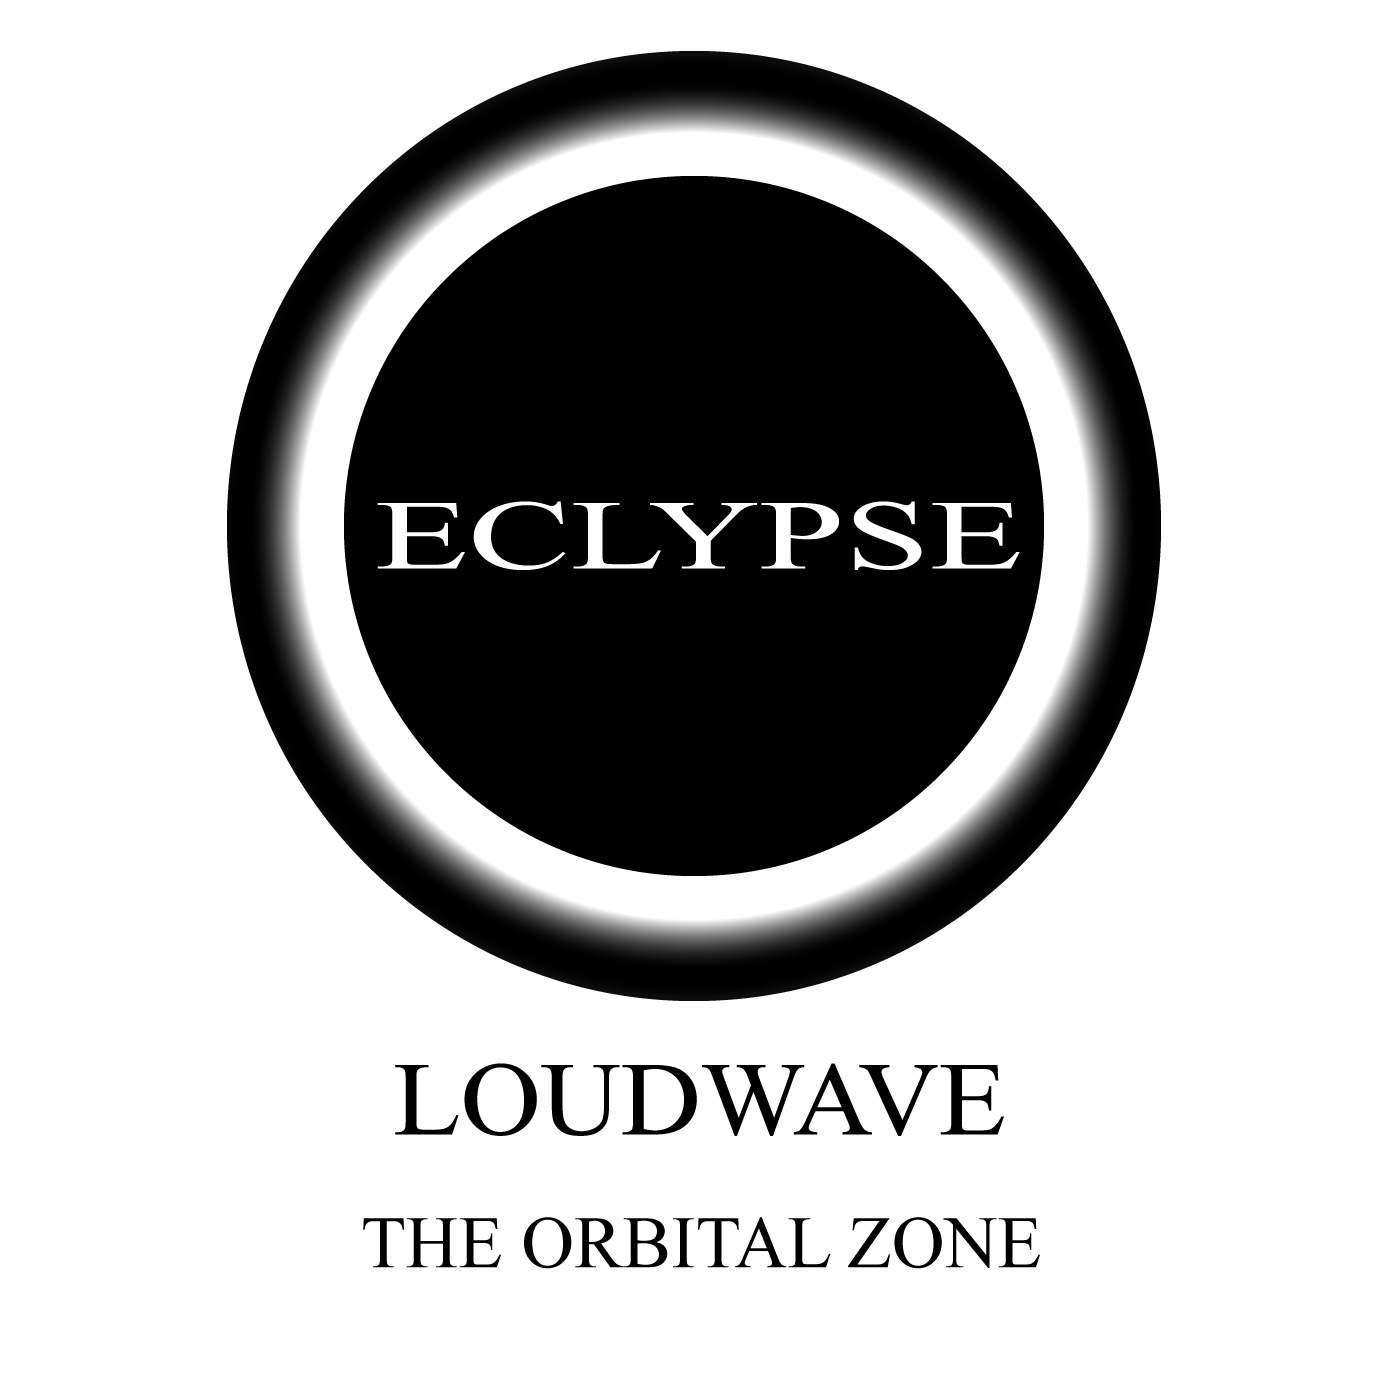 Loudwave - The orbital zone